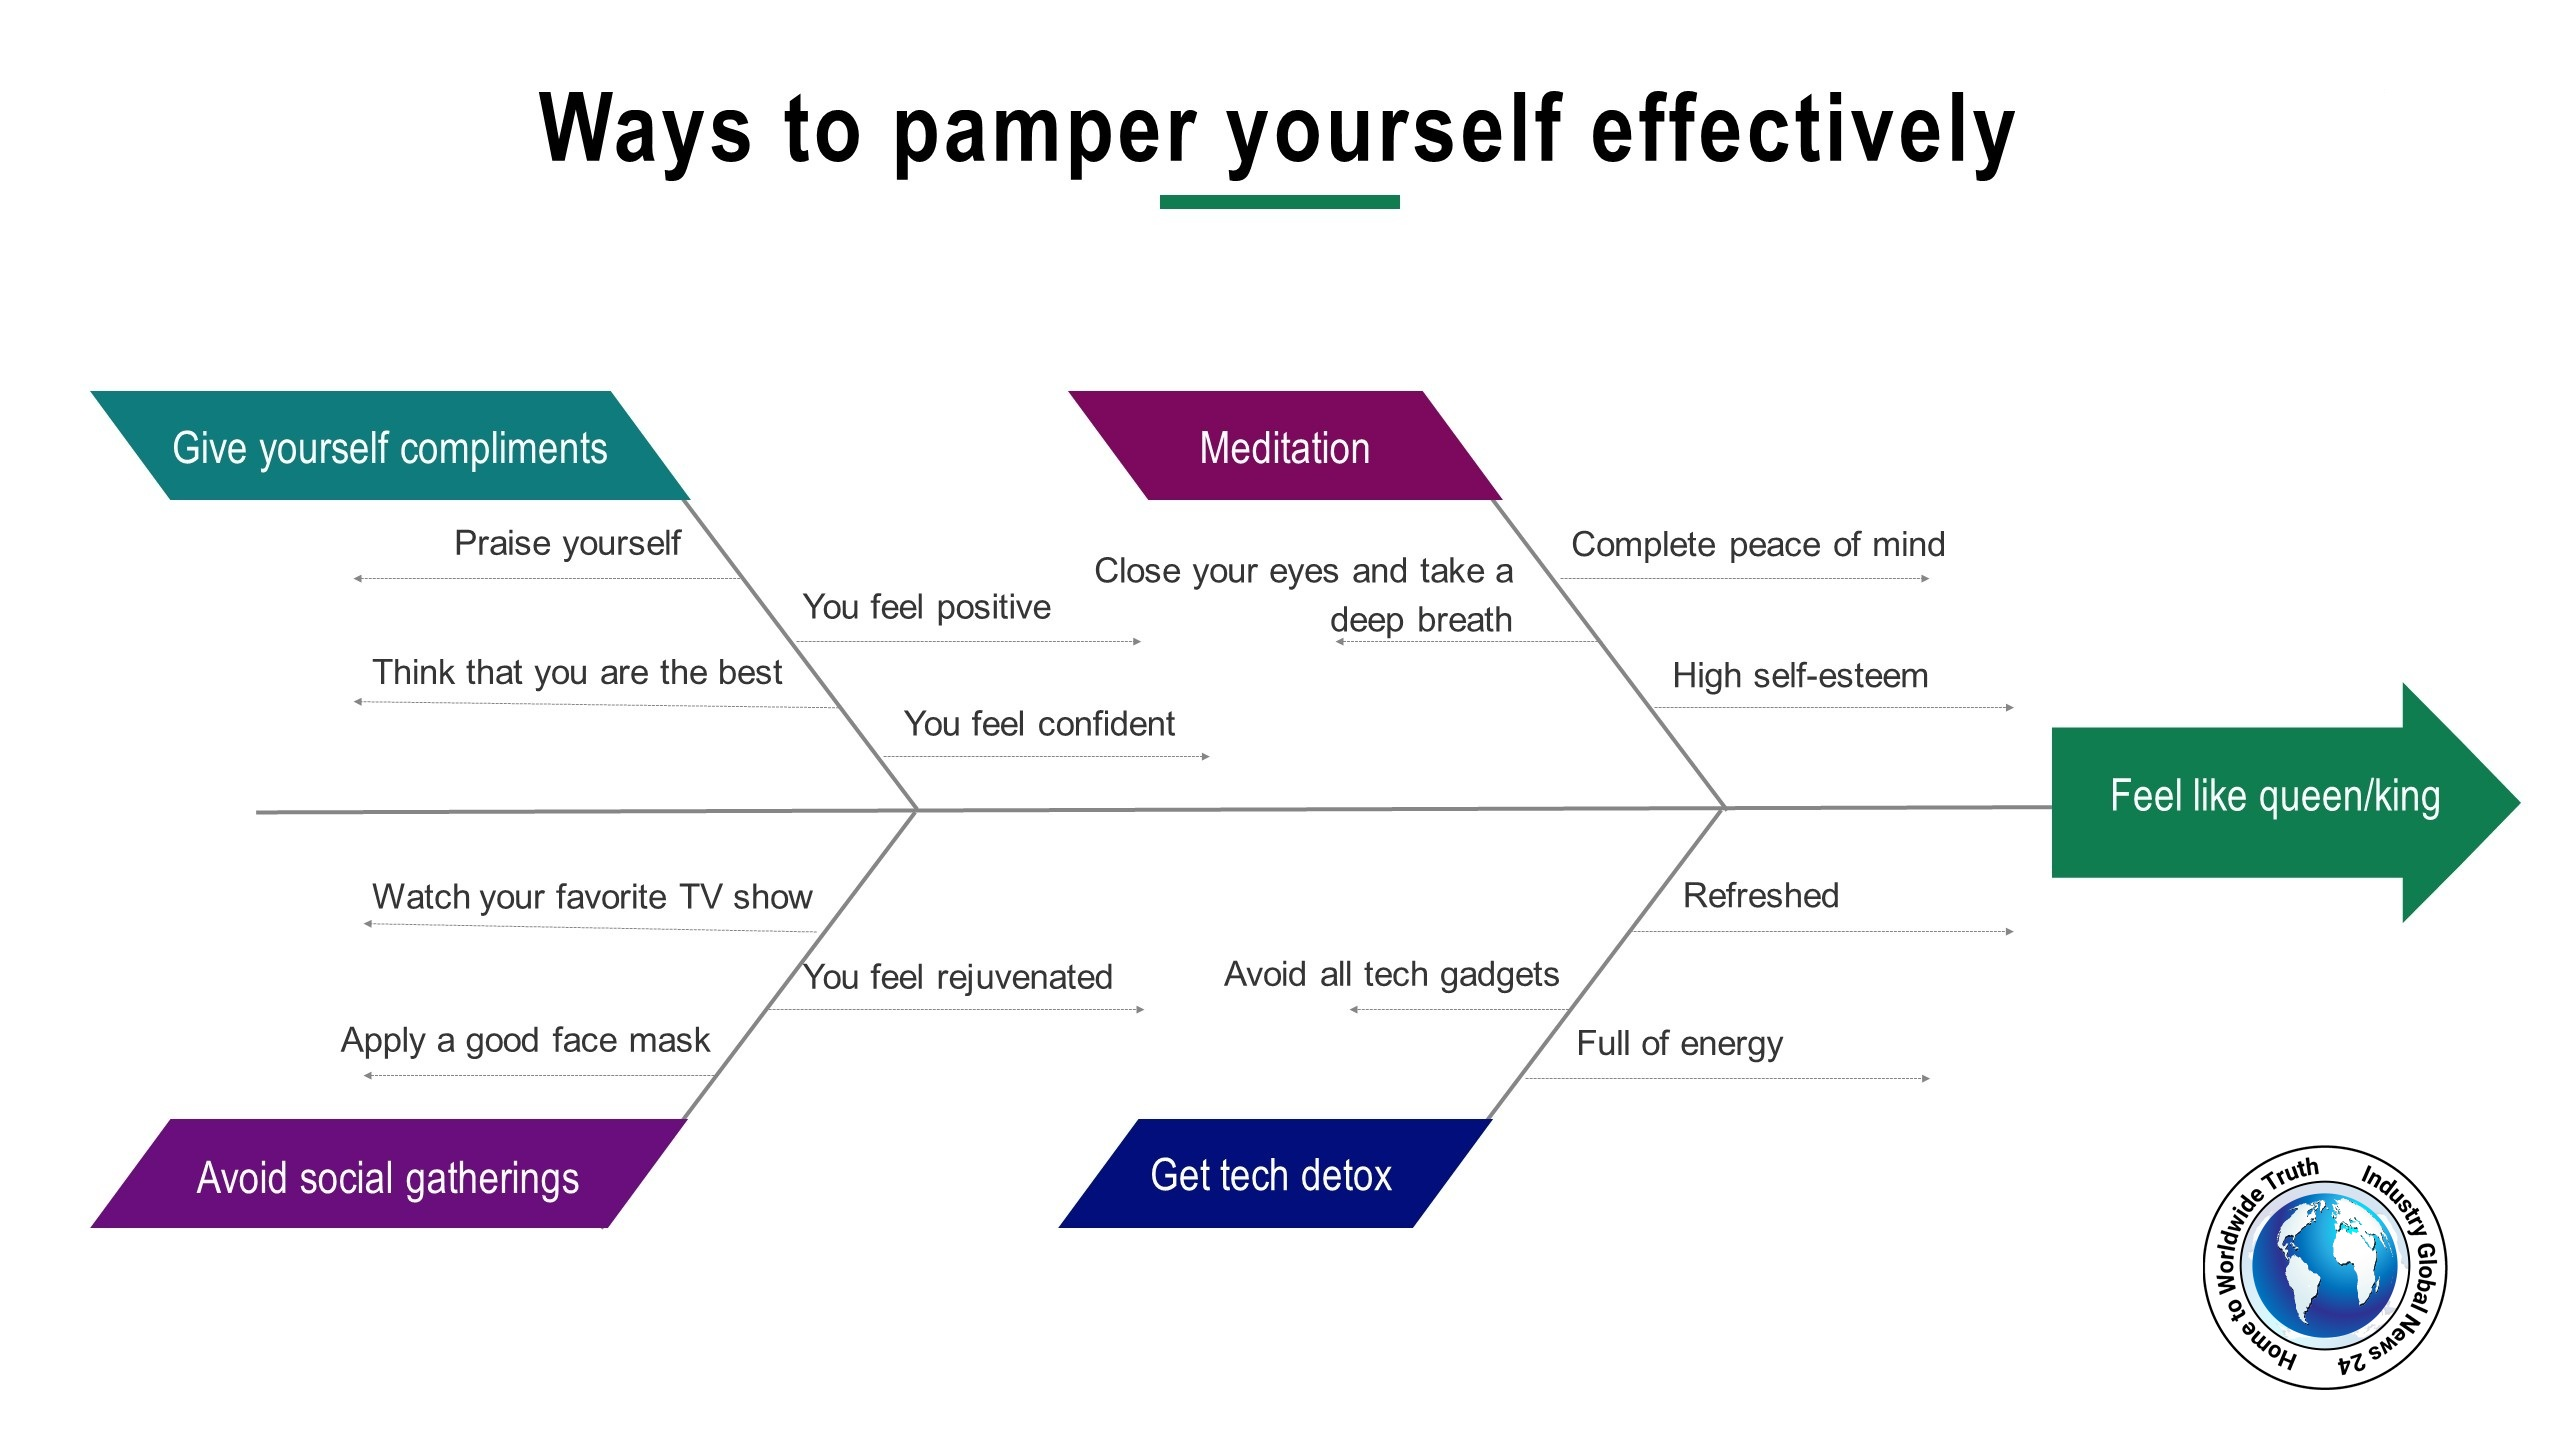 Ways to pamper yourself effectively